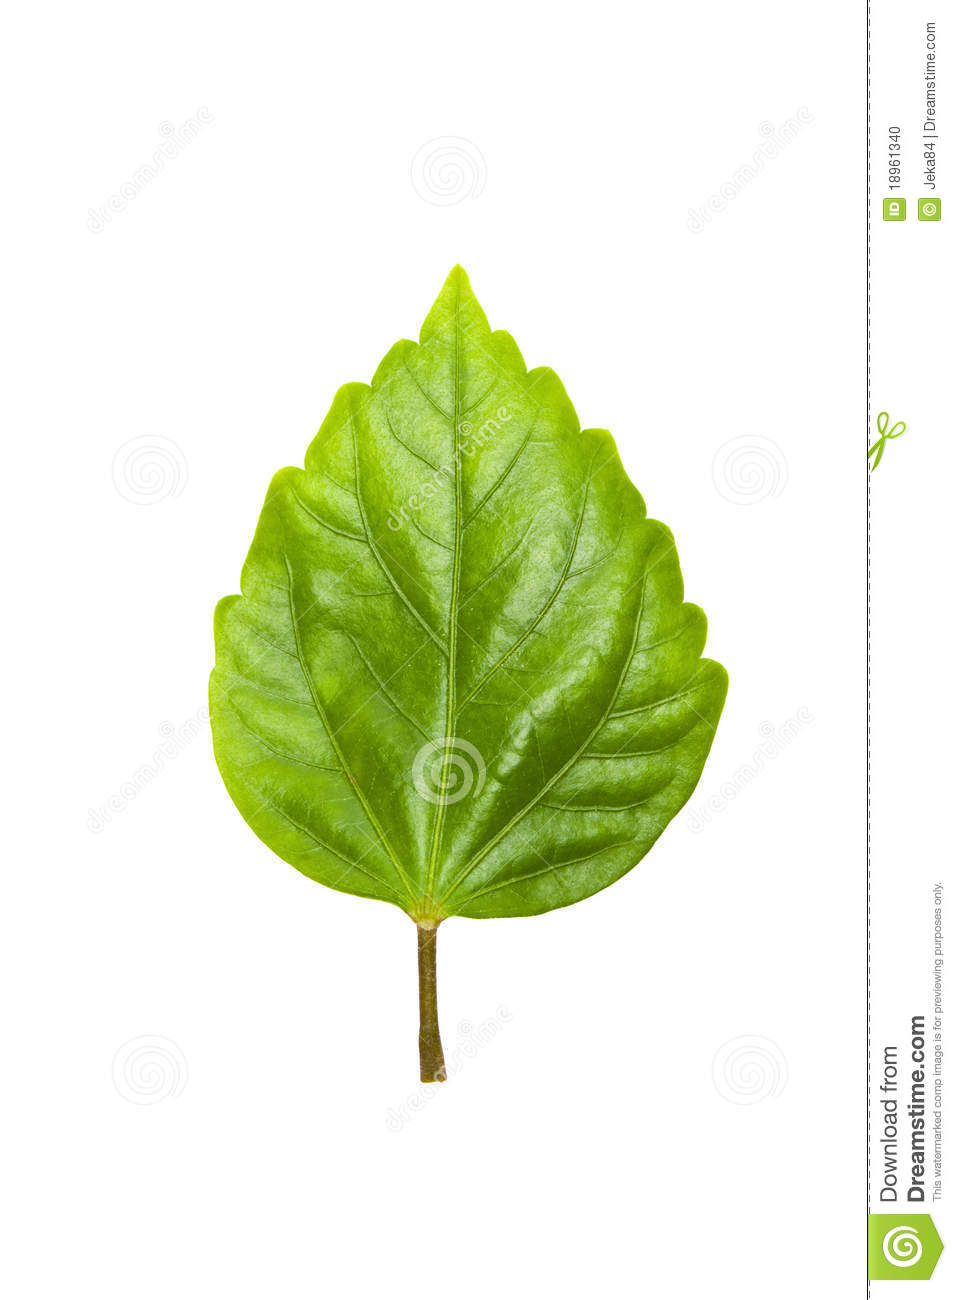 Graphic Stock Free Trial Green Tree Leave Stock Photo Image Of Garden Green